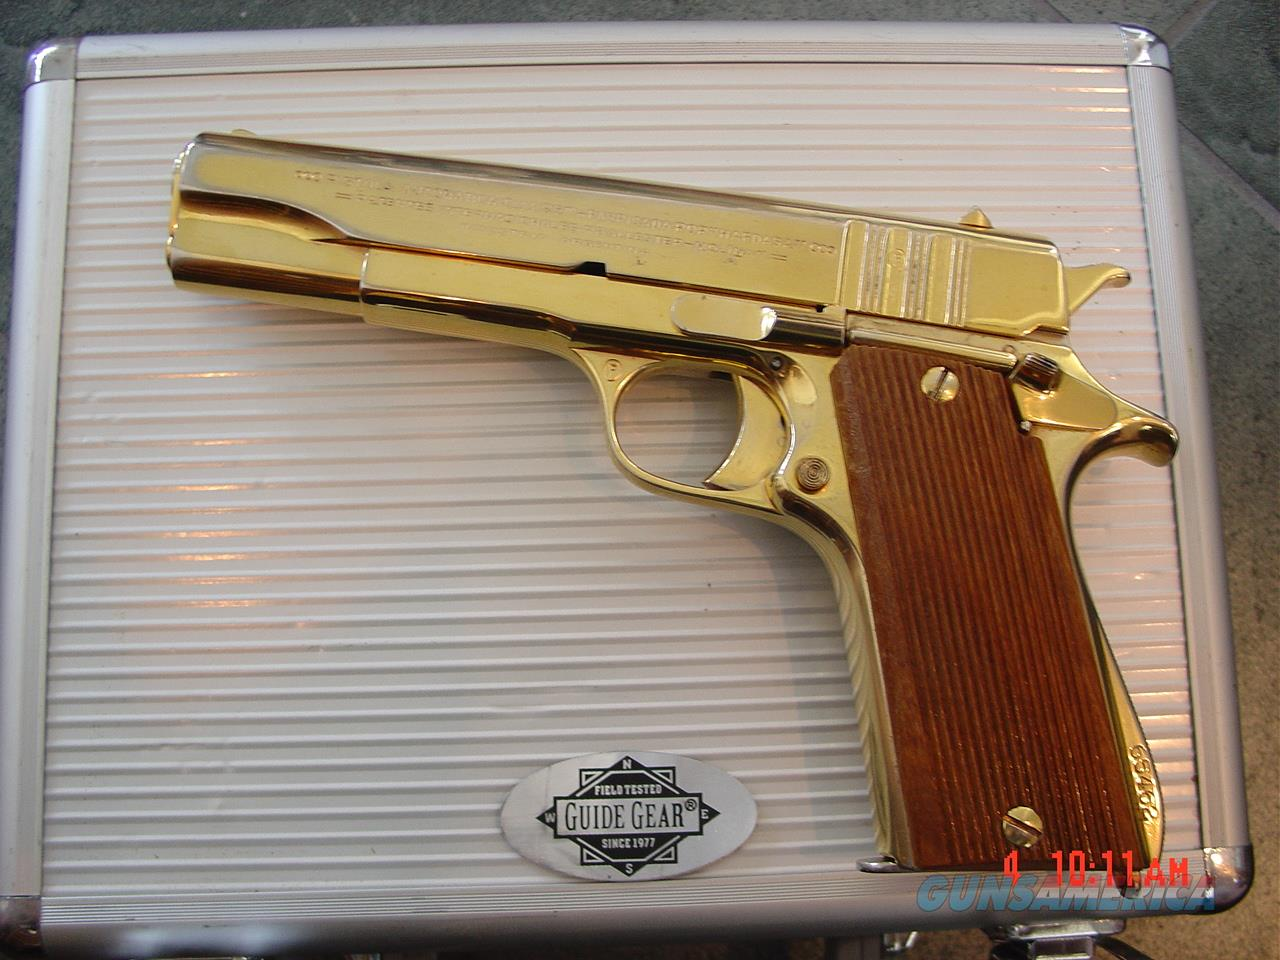 Argentine Army,model 1927,Ballester Molina,24k plated,lanyard loop,wood grips,custom case,made around 1950,awesome showpiece !!  Guns > Pistols > Colt Automatic Pistols (1911 & Var)